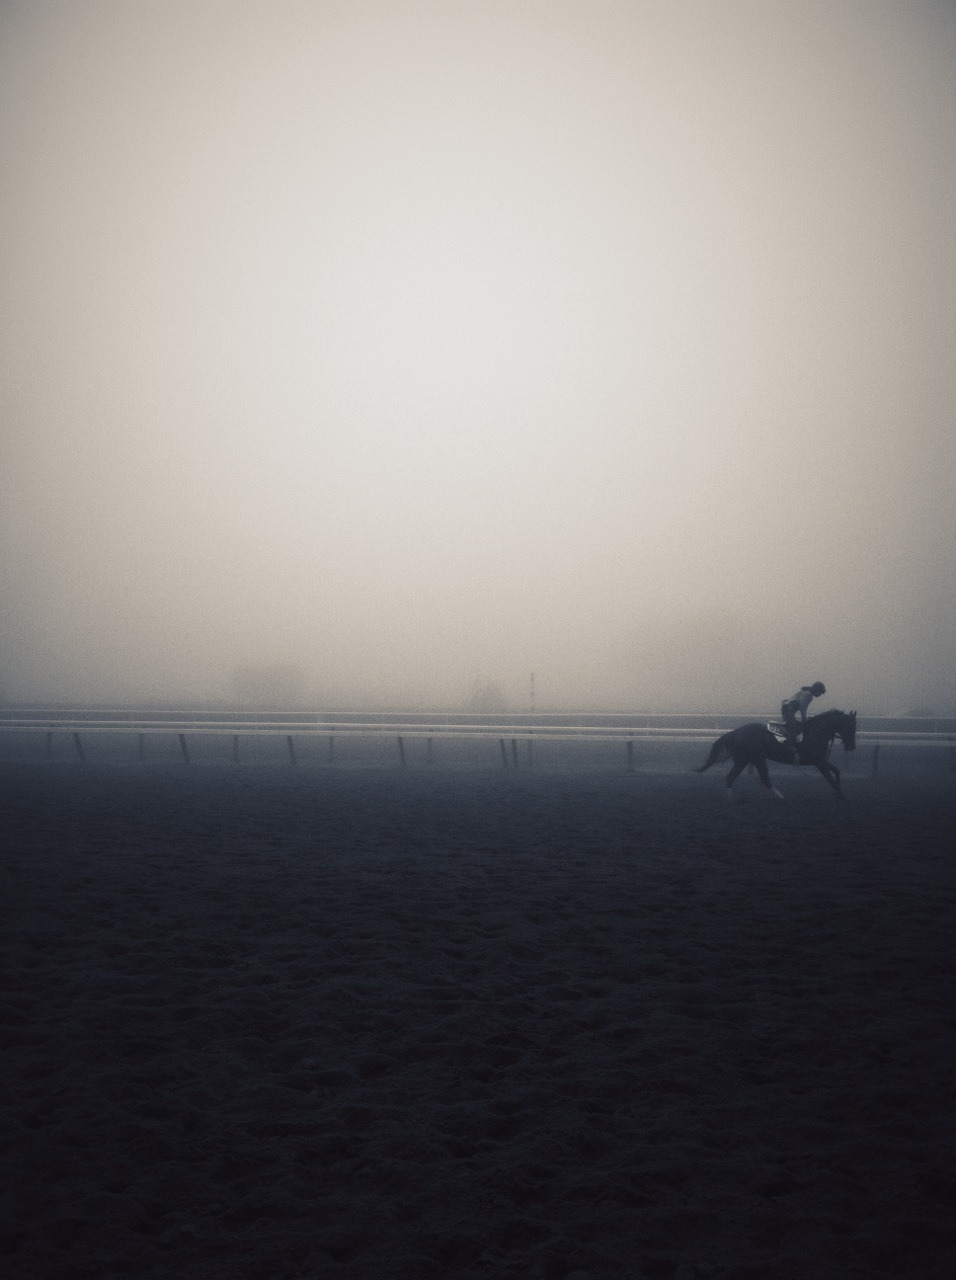 The historic Saratoga Race Course through the fog at sunrise on Saturday, July 22nd.  Two friends and I woke up at the crack of dawn to secure a picnic table for the day of racing. We had an early morning breakfast beside the track and watched some horses do their morning workout.